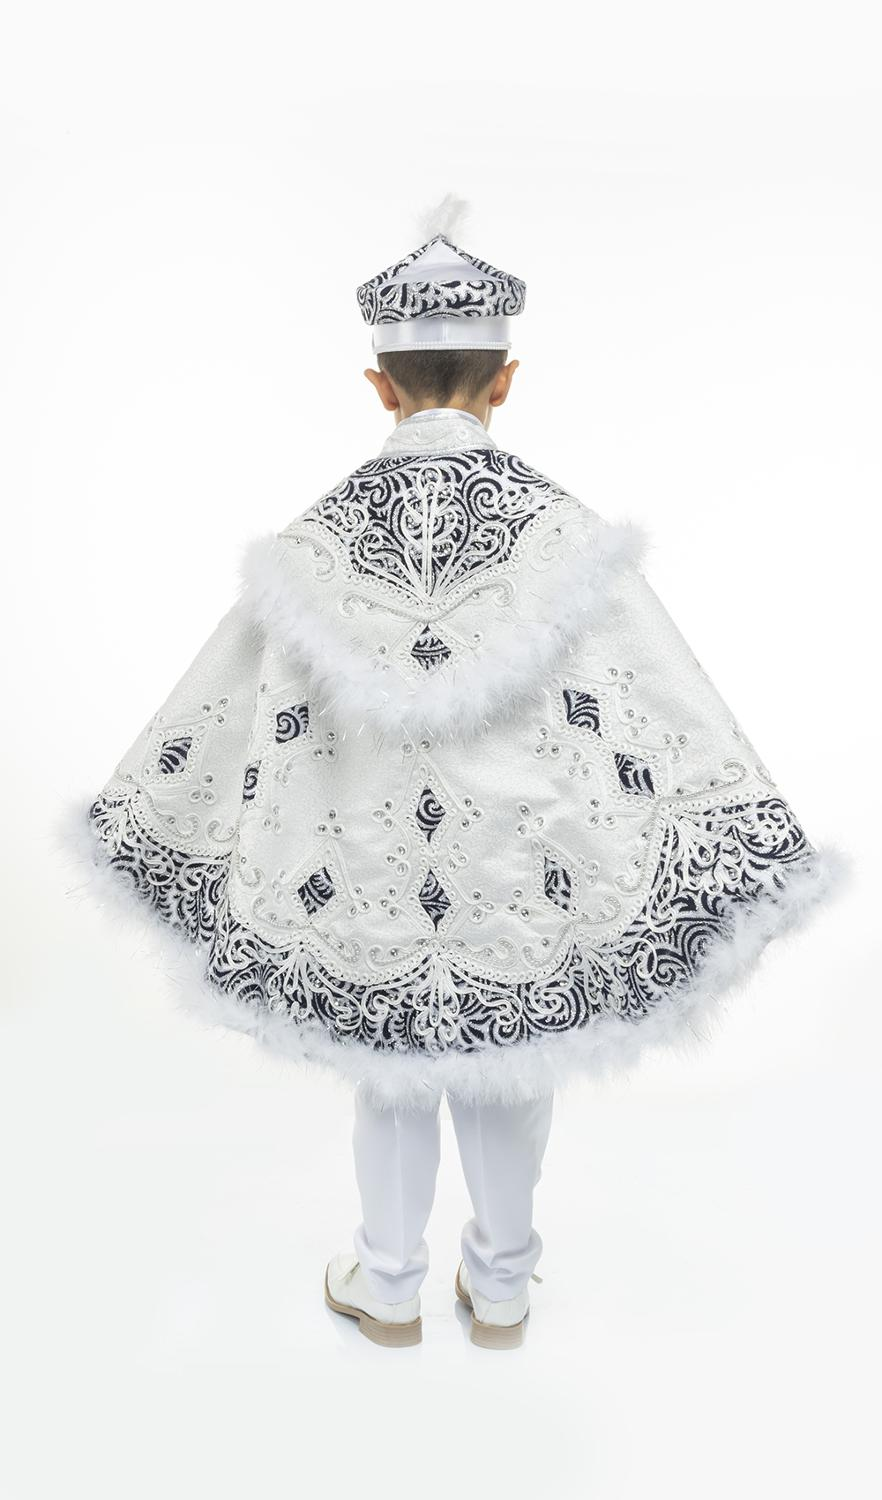 Pasha Prince Cape Sunnet Clothes Kid Circumcision Dress Costume 1-14 Age Birthday and Party Event Child Special Gift Tradition enlarge